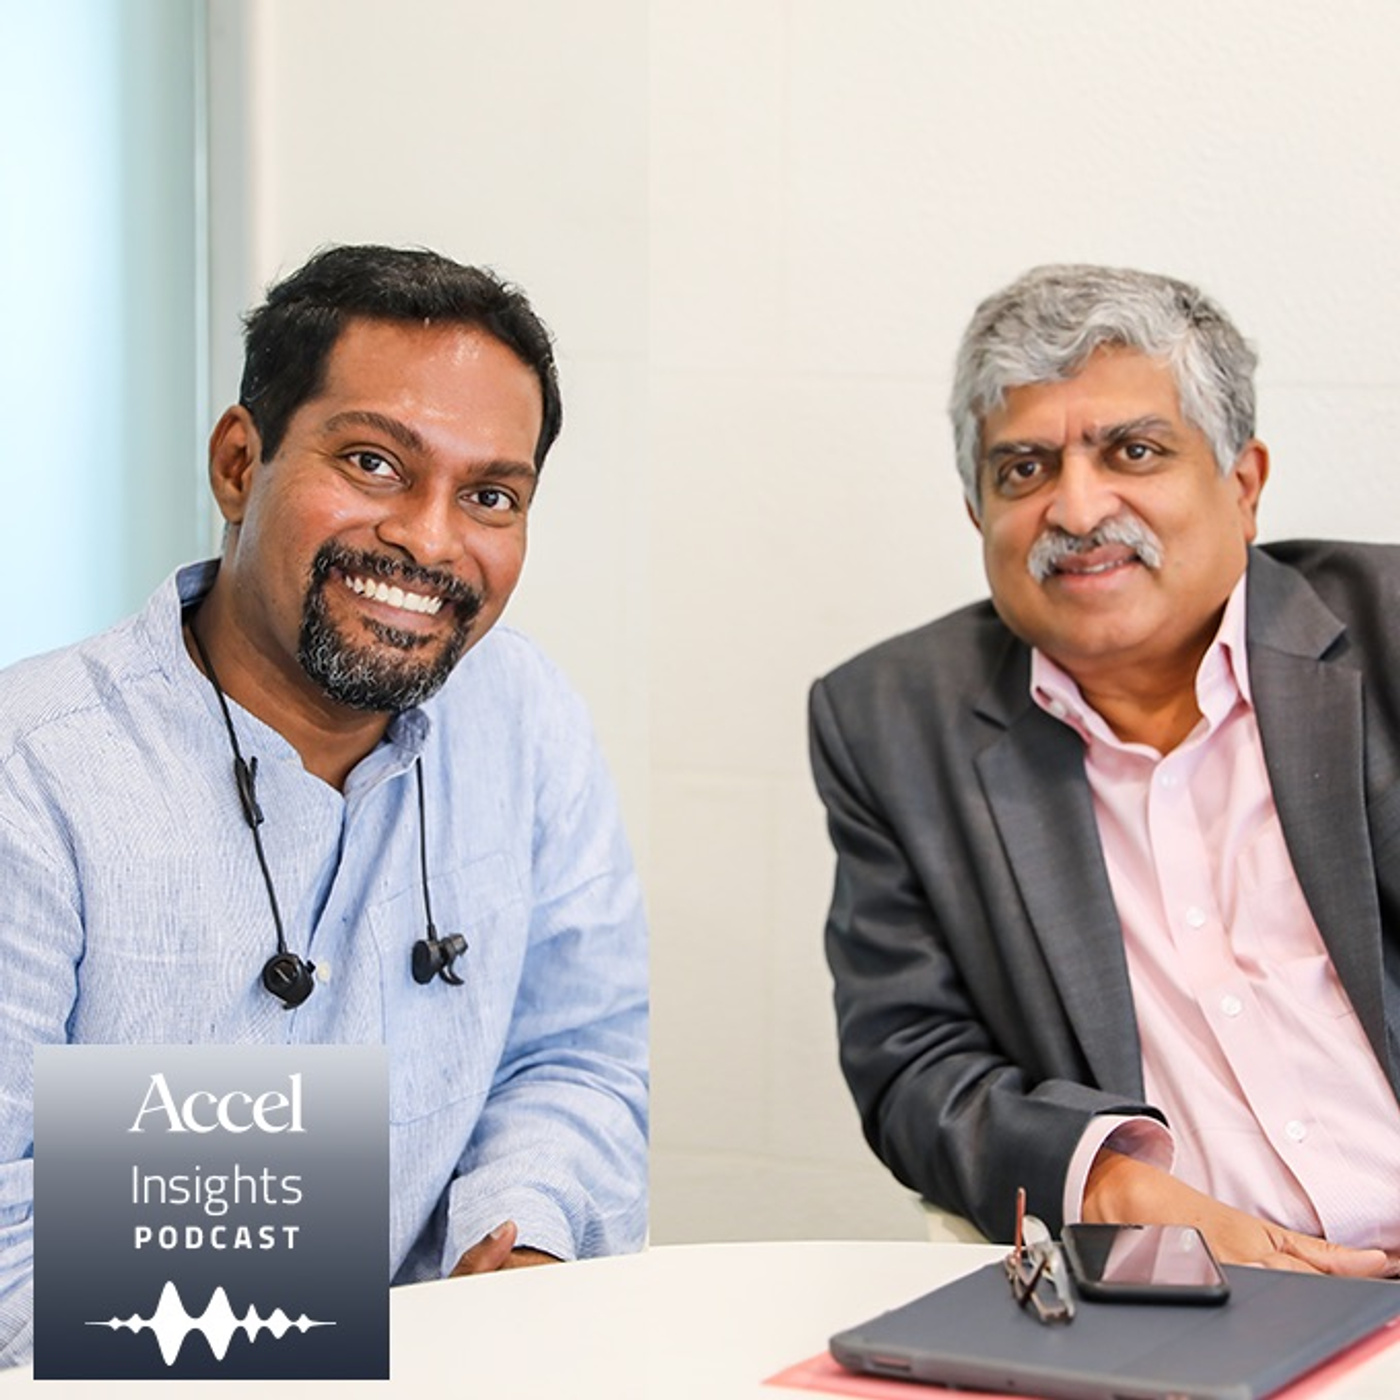 INSIGHTS #35 – Nandan Nilekani shares his journey from building Infosys to rolling out Aadhaar